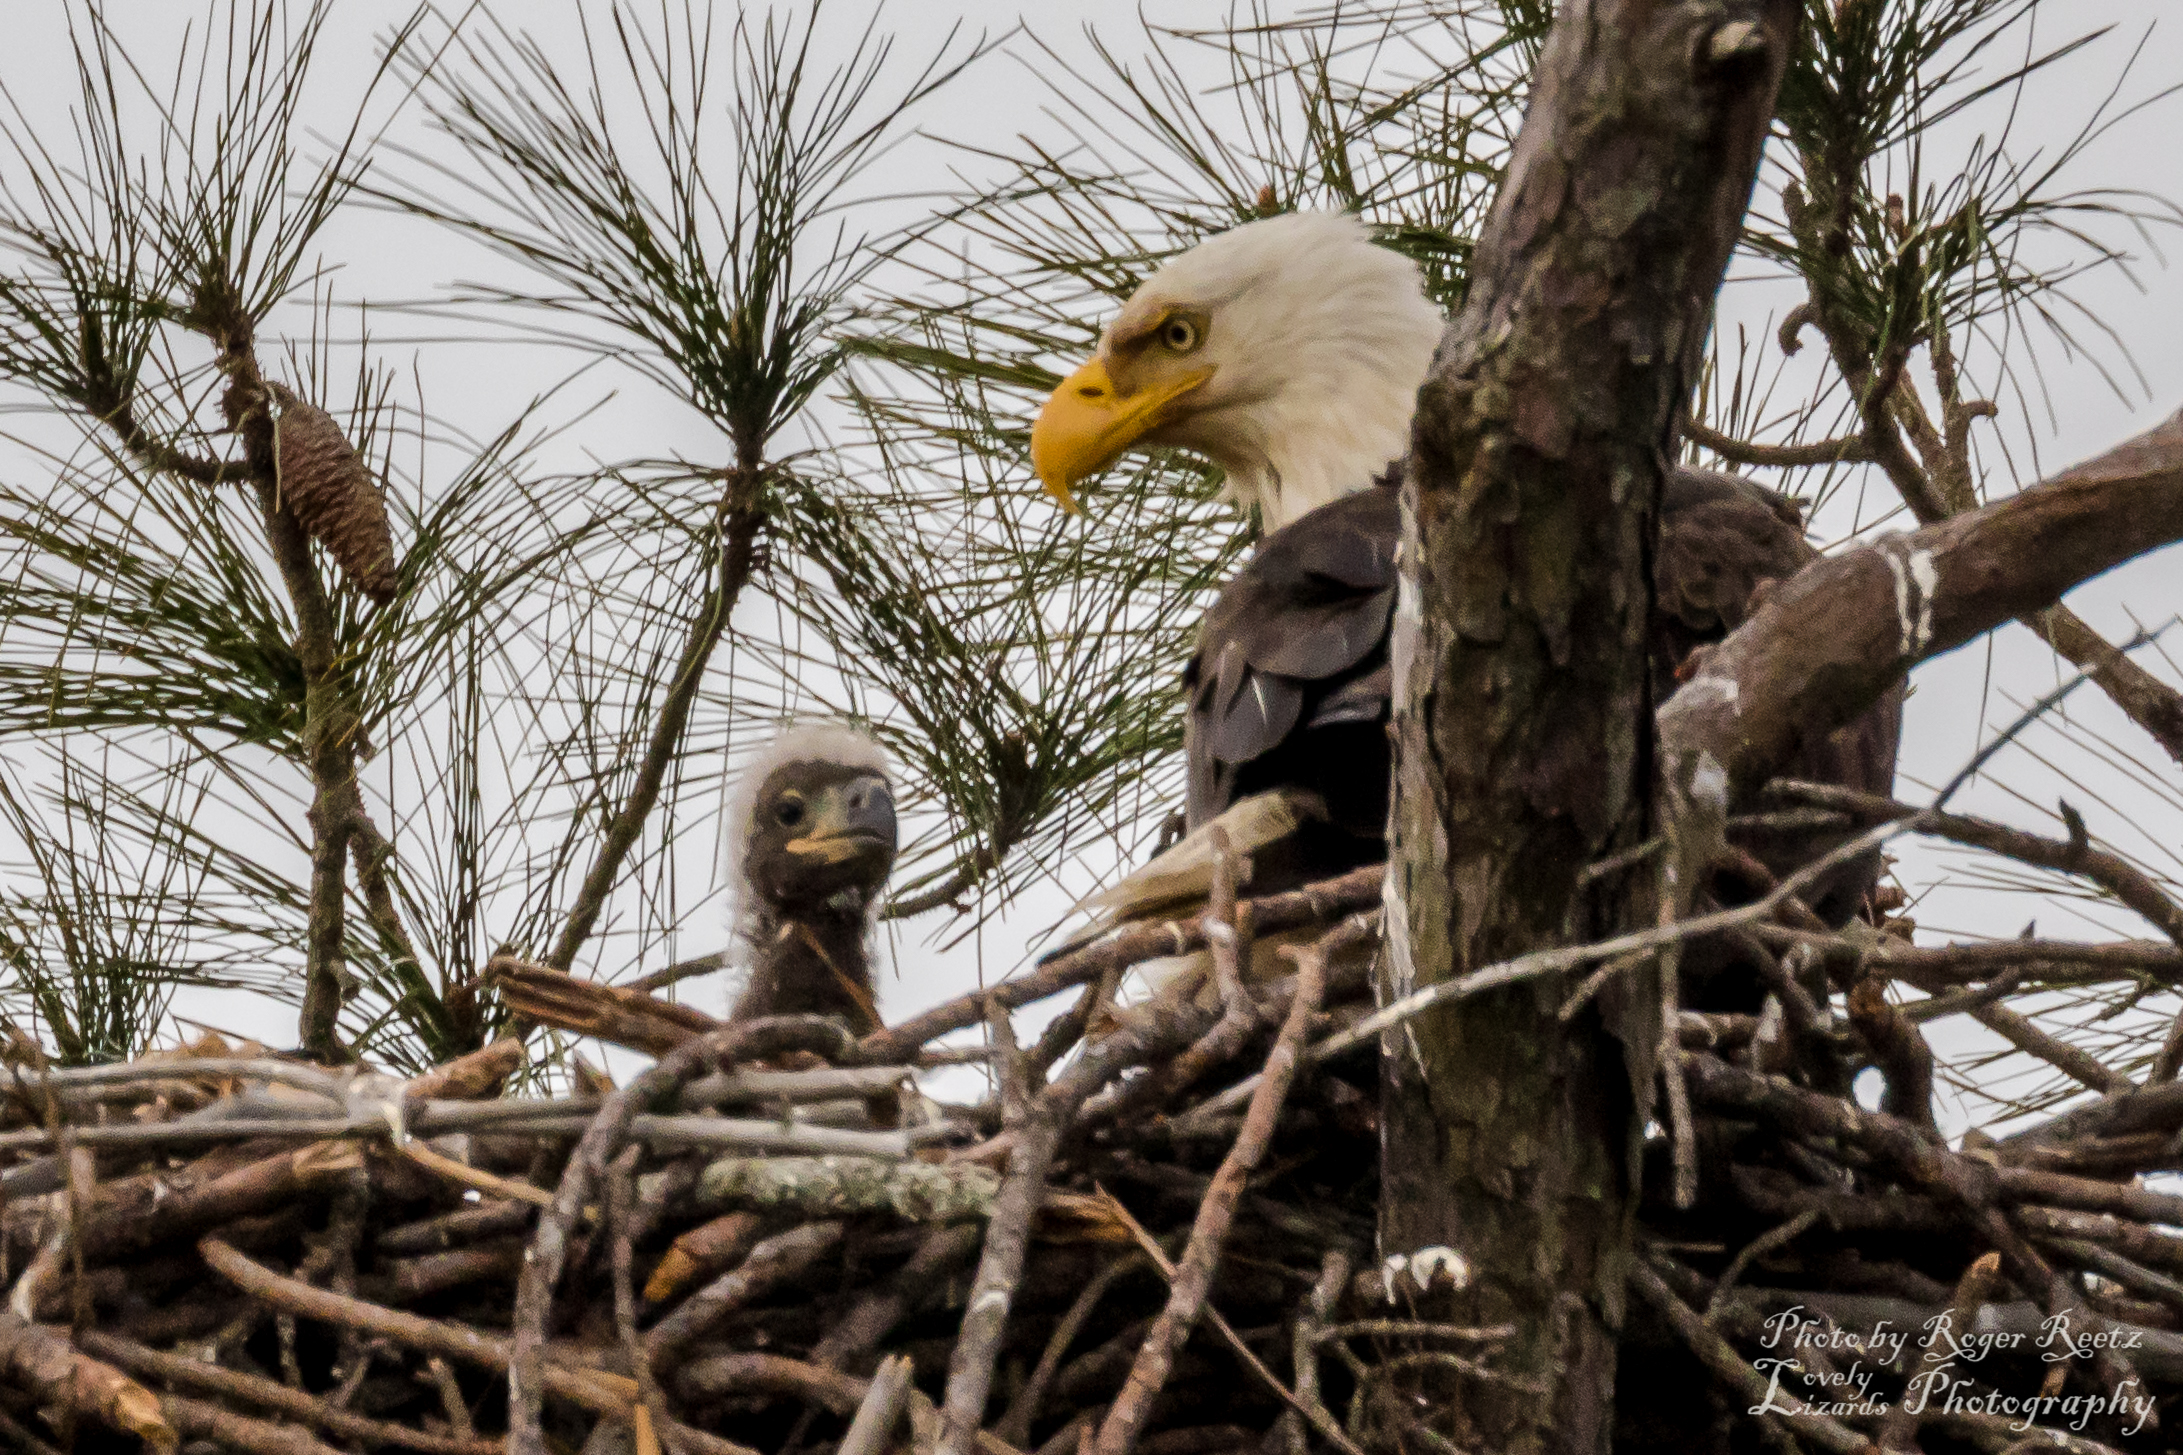 Bald Eagle in nest with chick by Roger Reetz